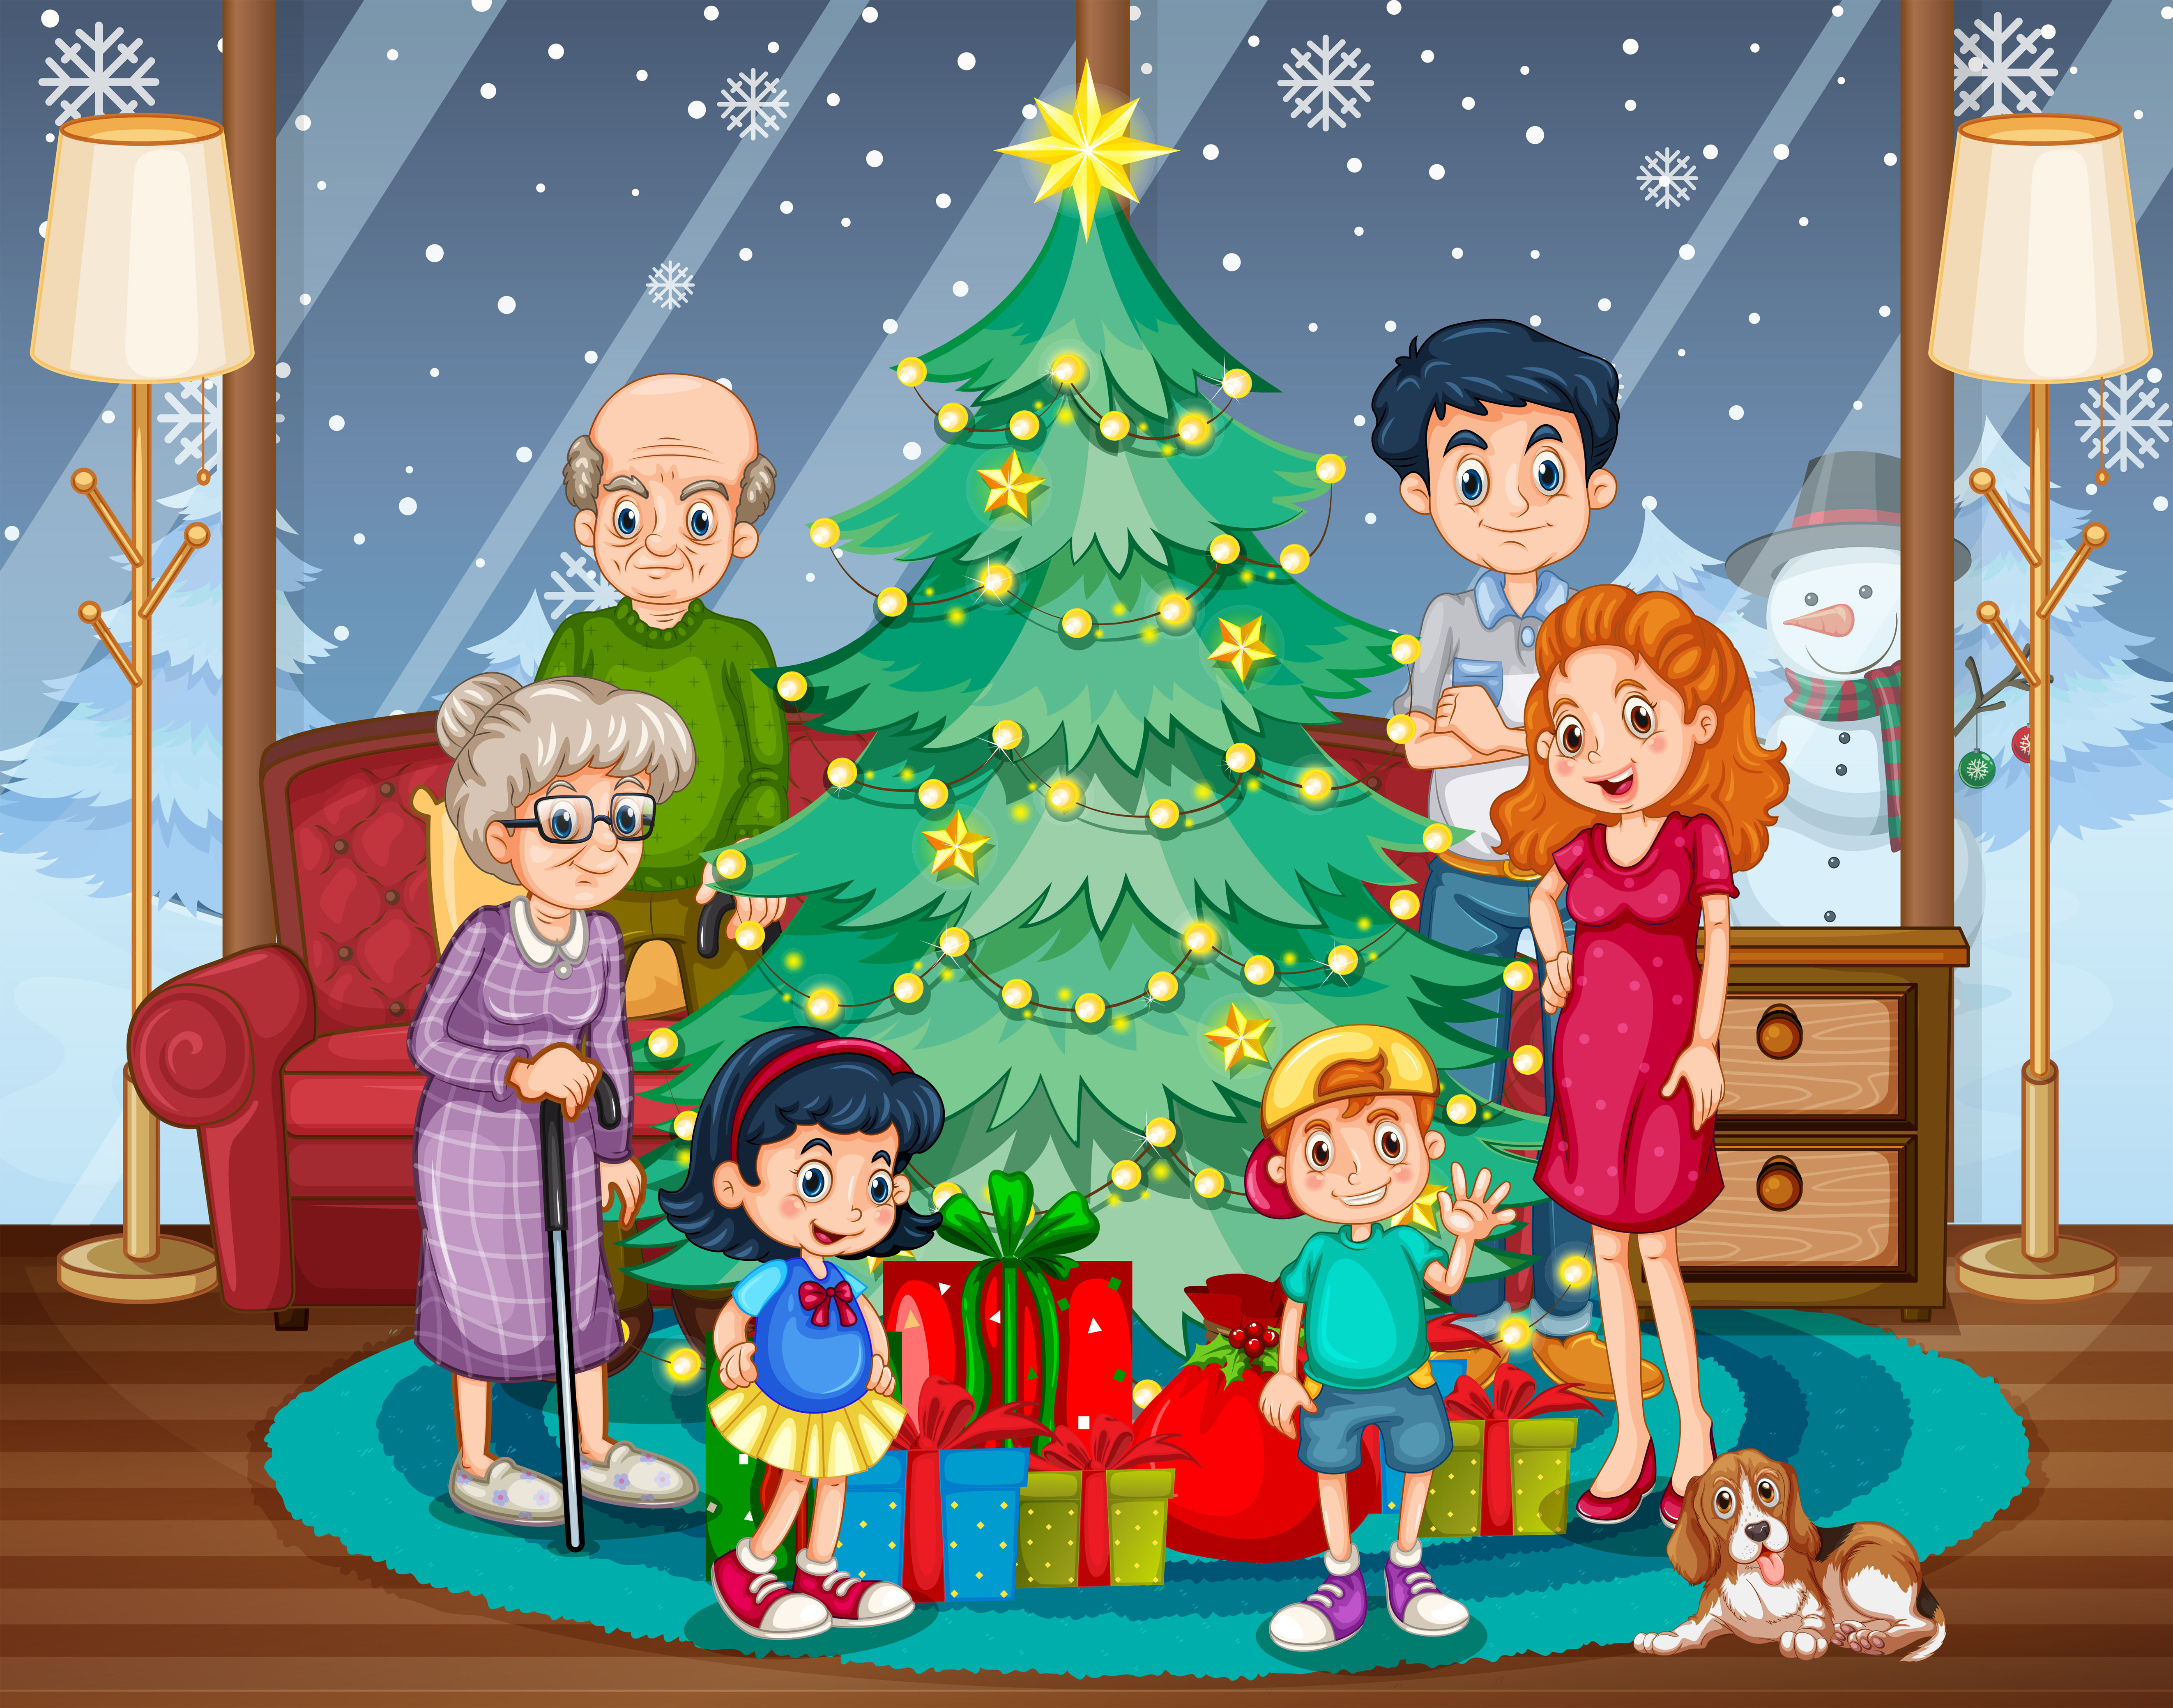 Family Gathering On Christmas Download Free Vectors Clipart Graphics Vector Art